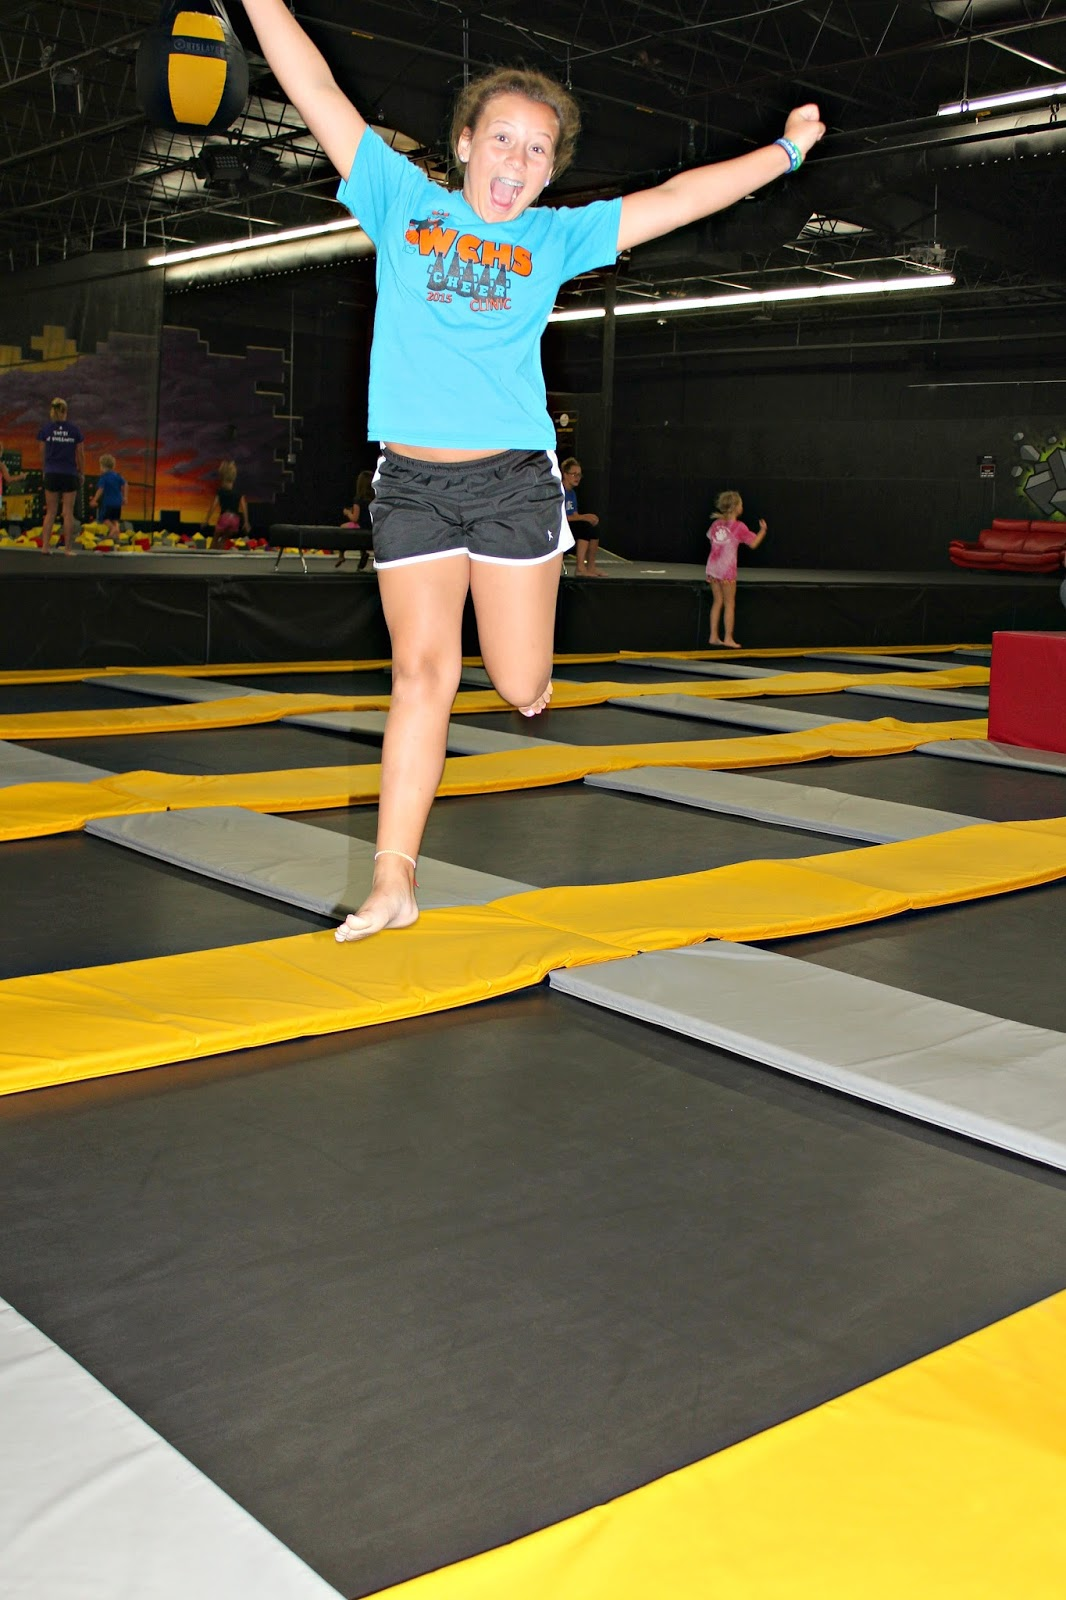 Sexy Girls On Trampolines